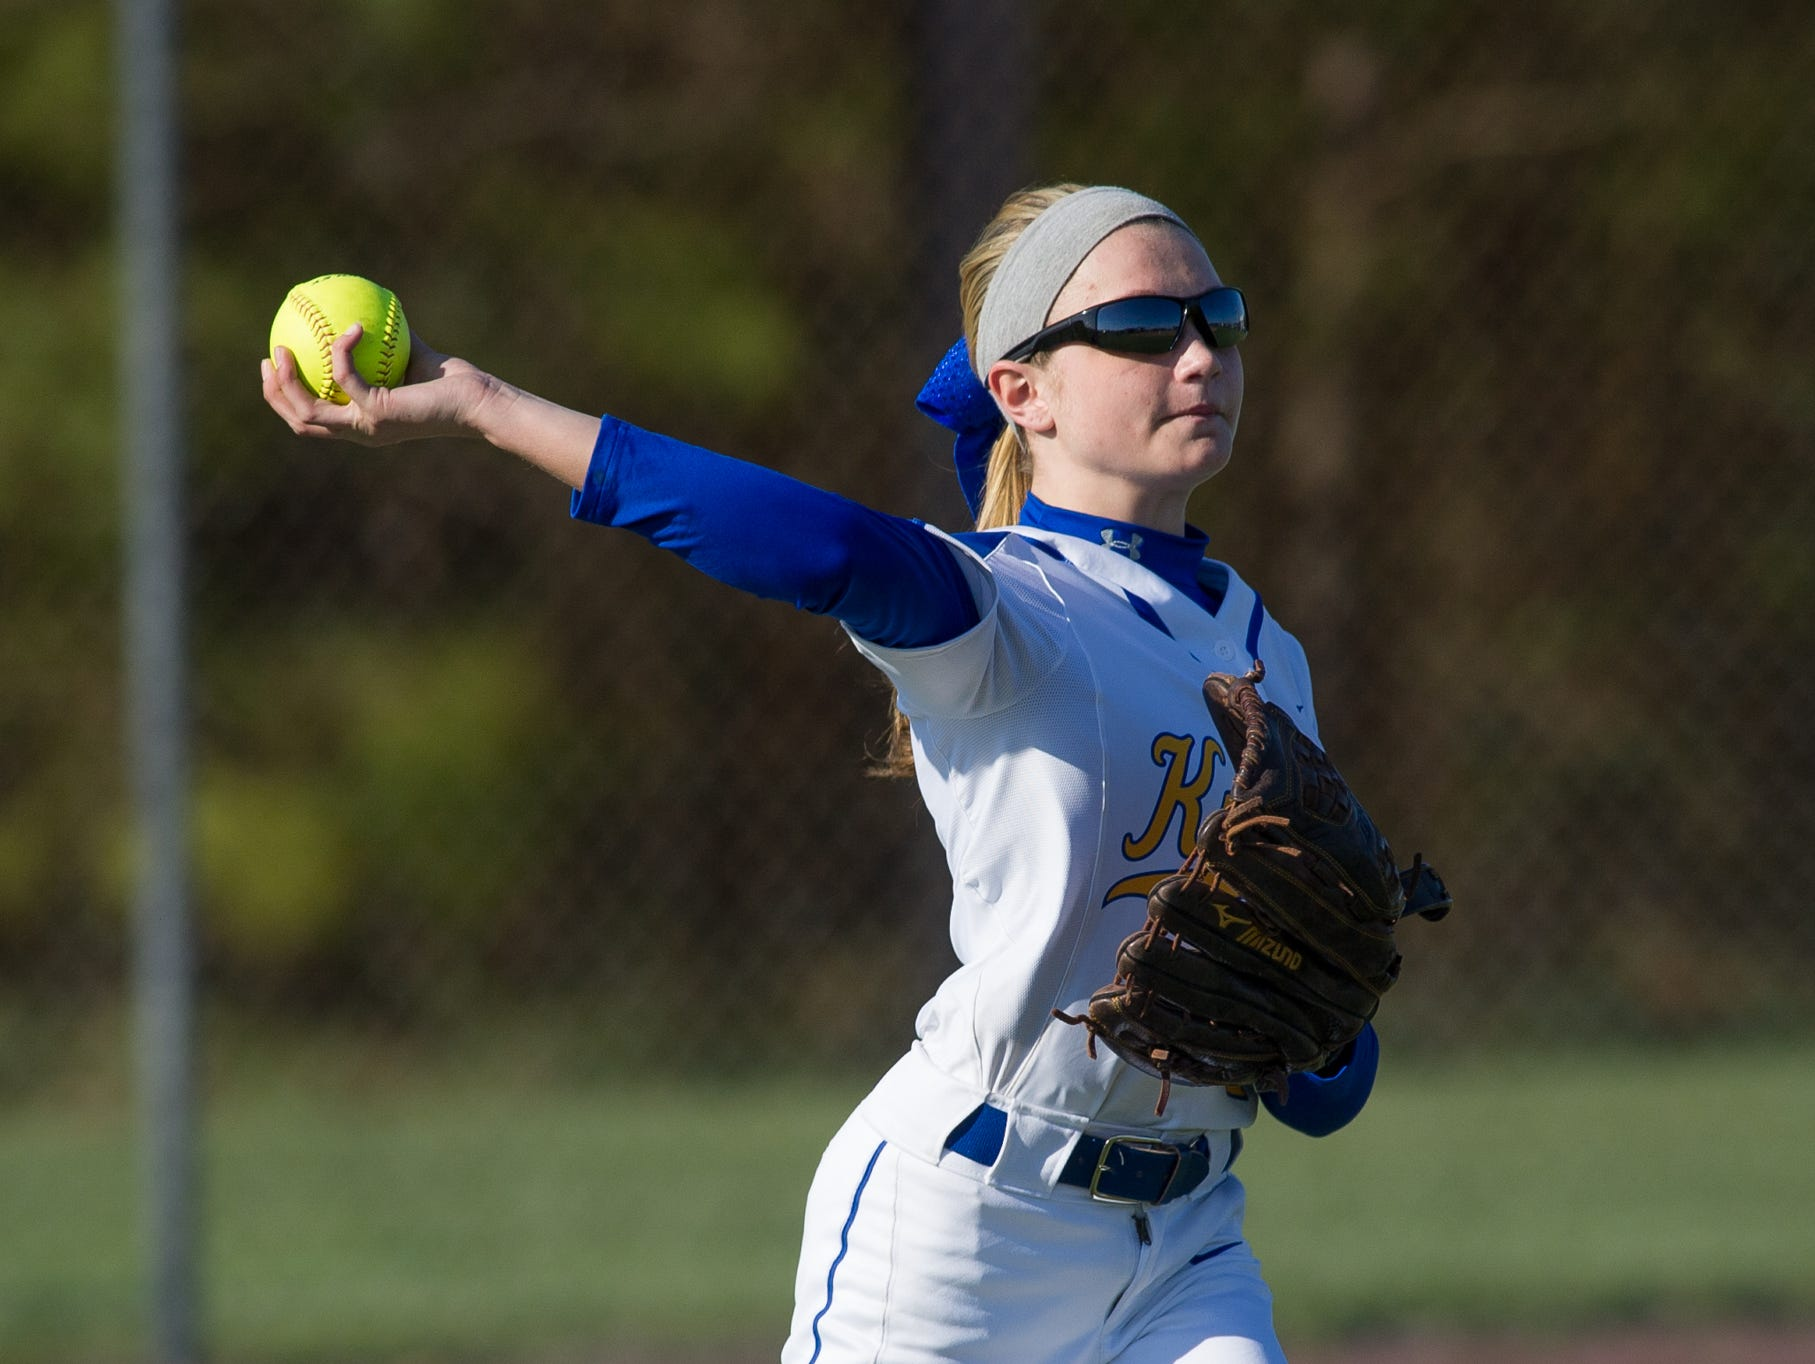 Sussex Central's Kailee Abbott (2) throws the ball to second base from the outfield in game against Sussex Tech.